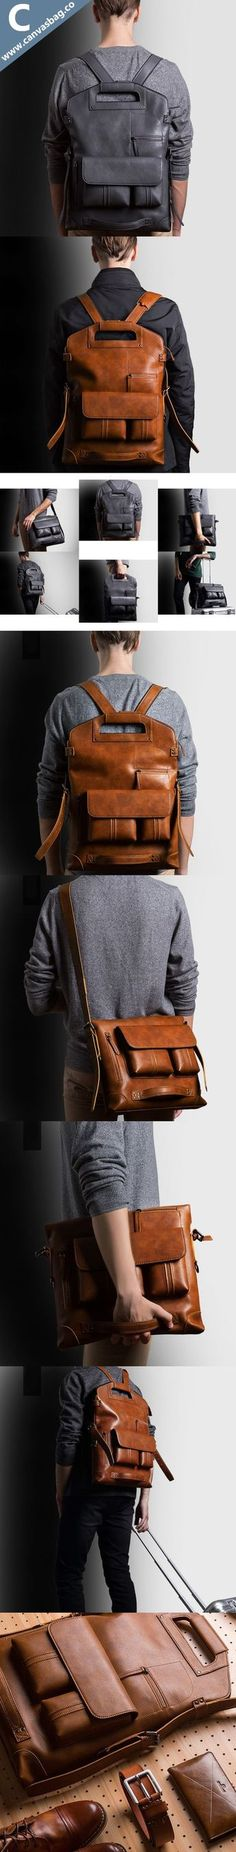 Leather Convertible Backpack - Canvas Bag Leather Bag CanvasBag.Co